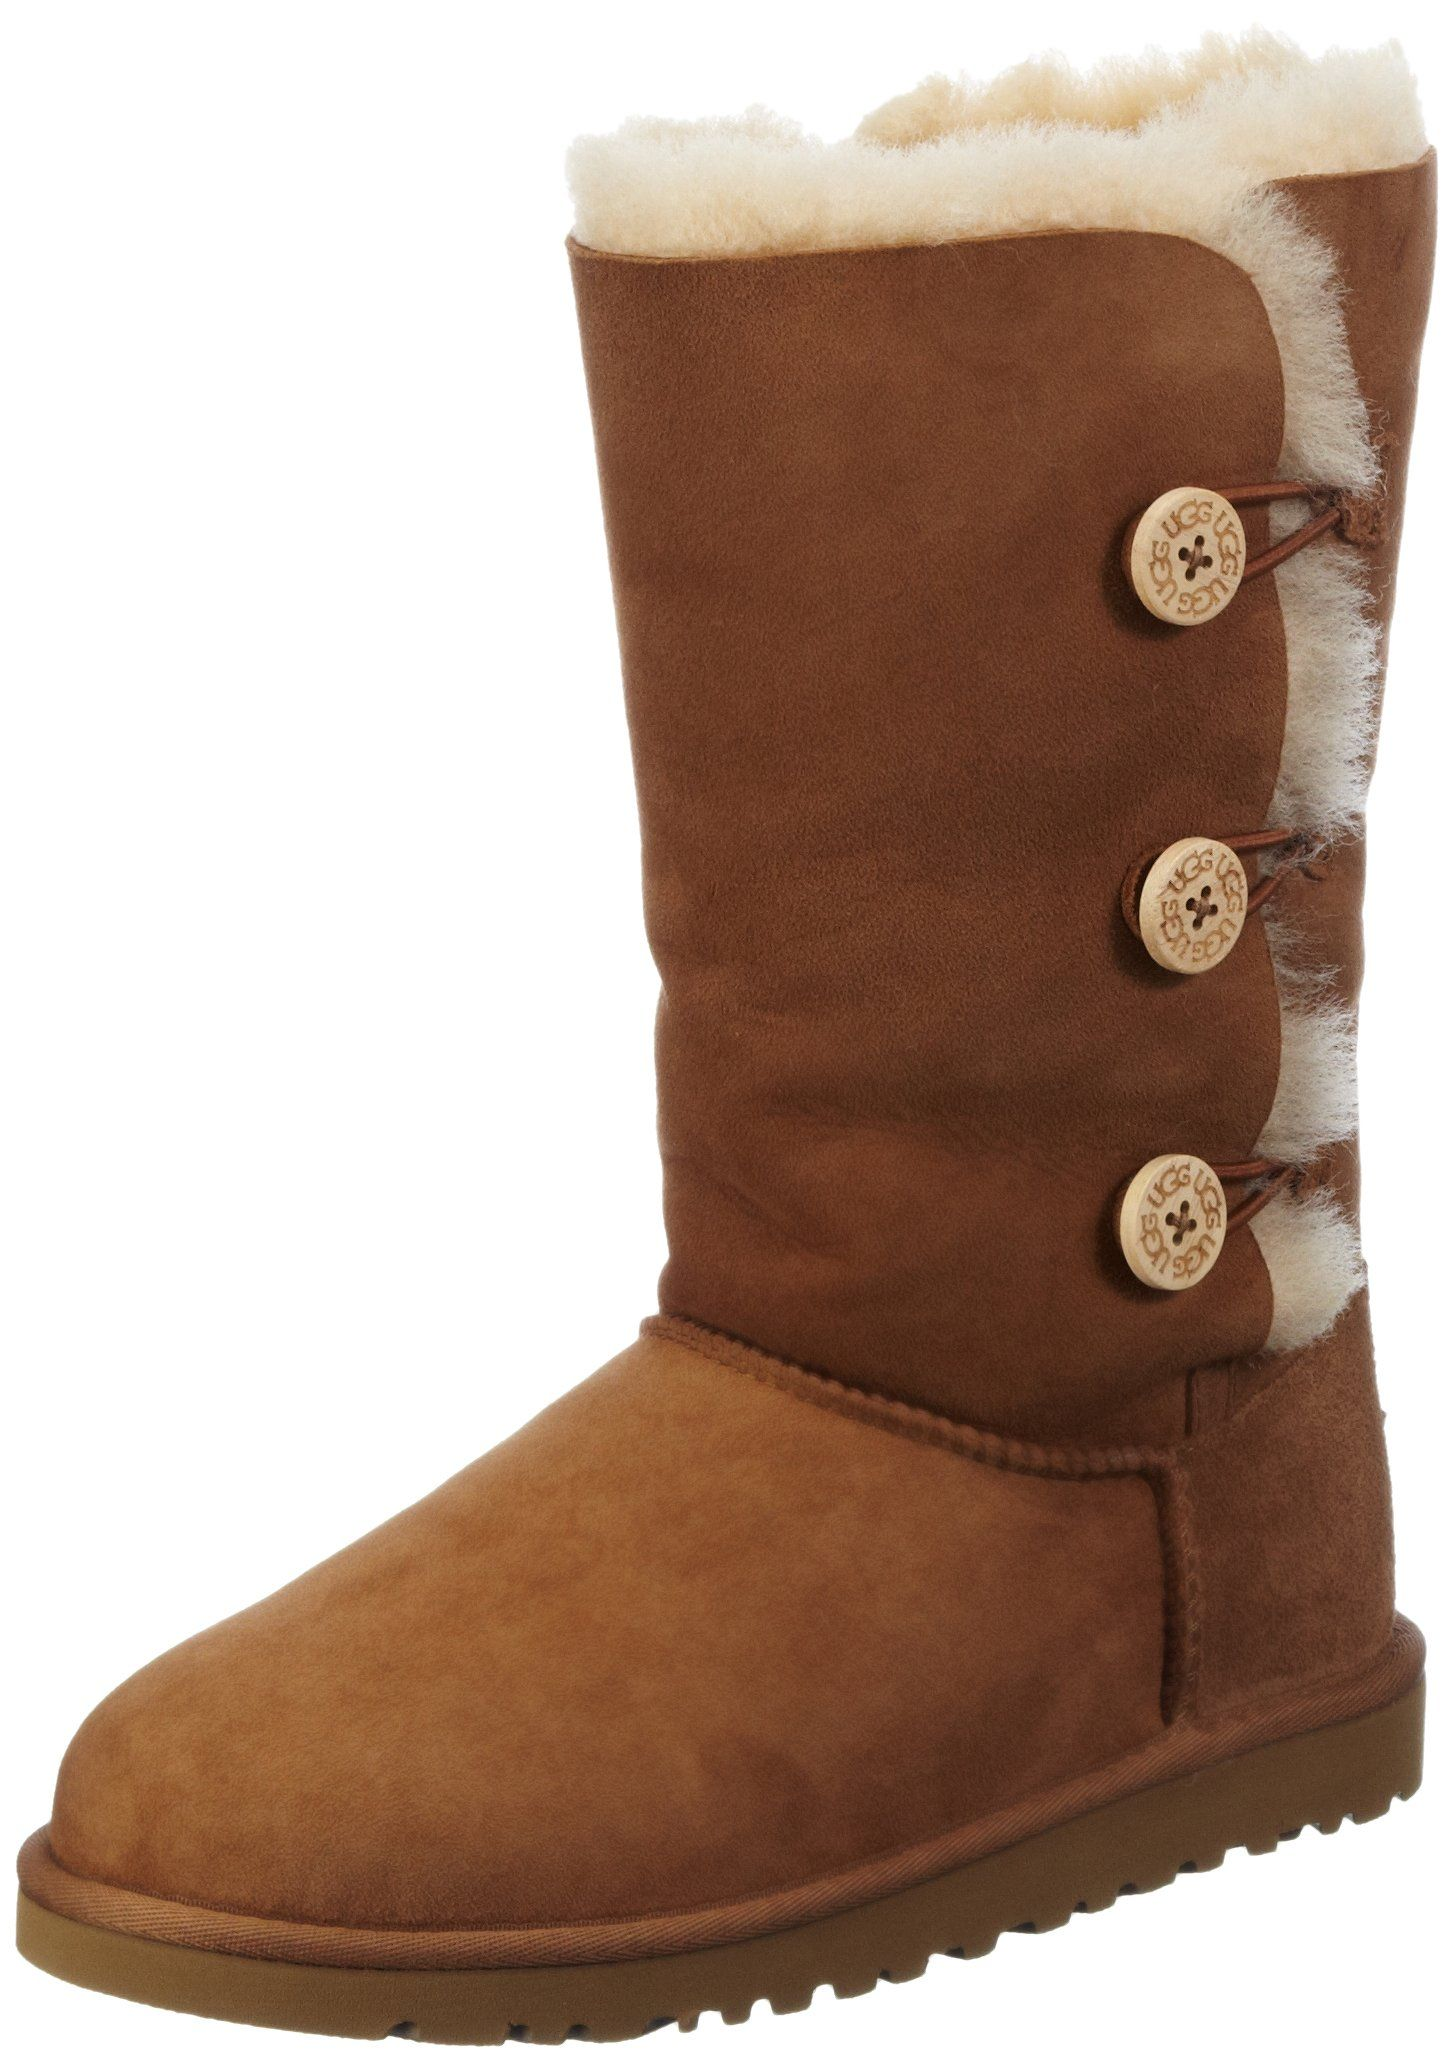 École de Kids pré/ classe de bottes UGG bottes Kids de Bailey Button Triplet 10732da - christopherbooneavalere.website